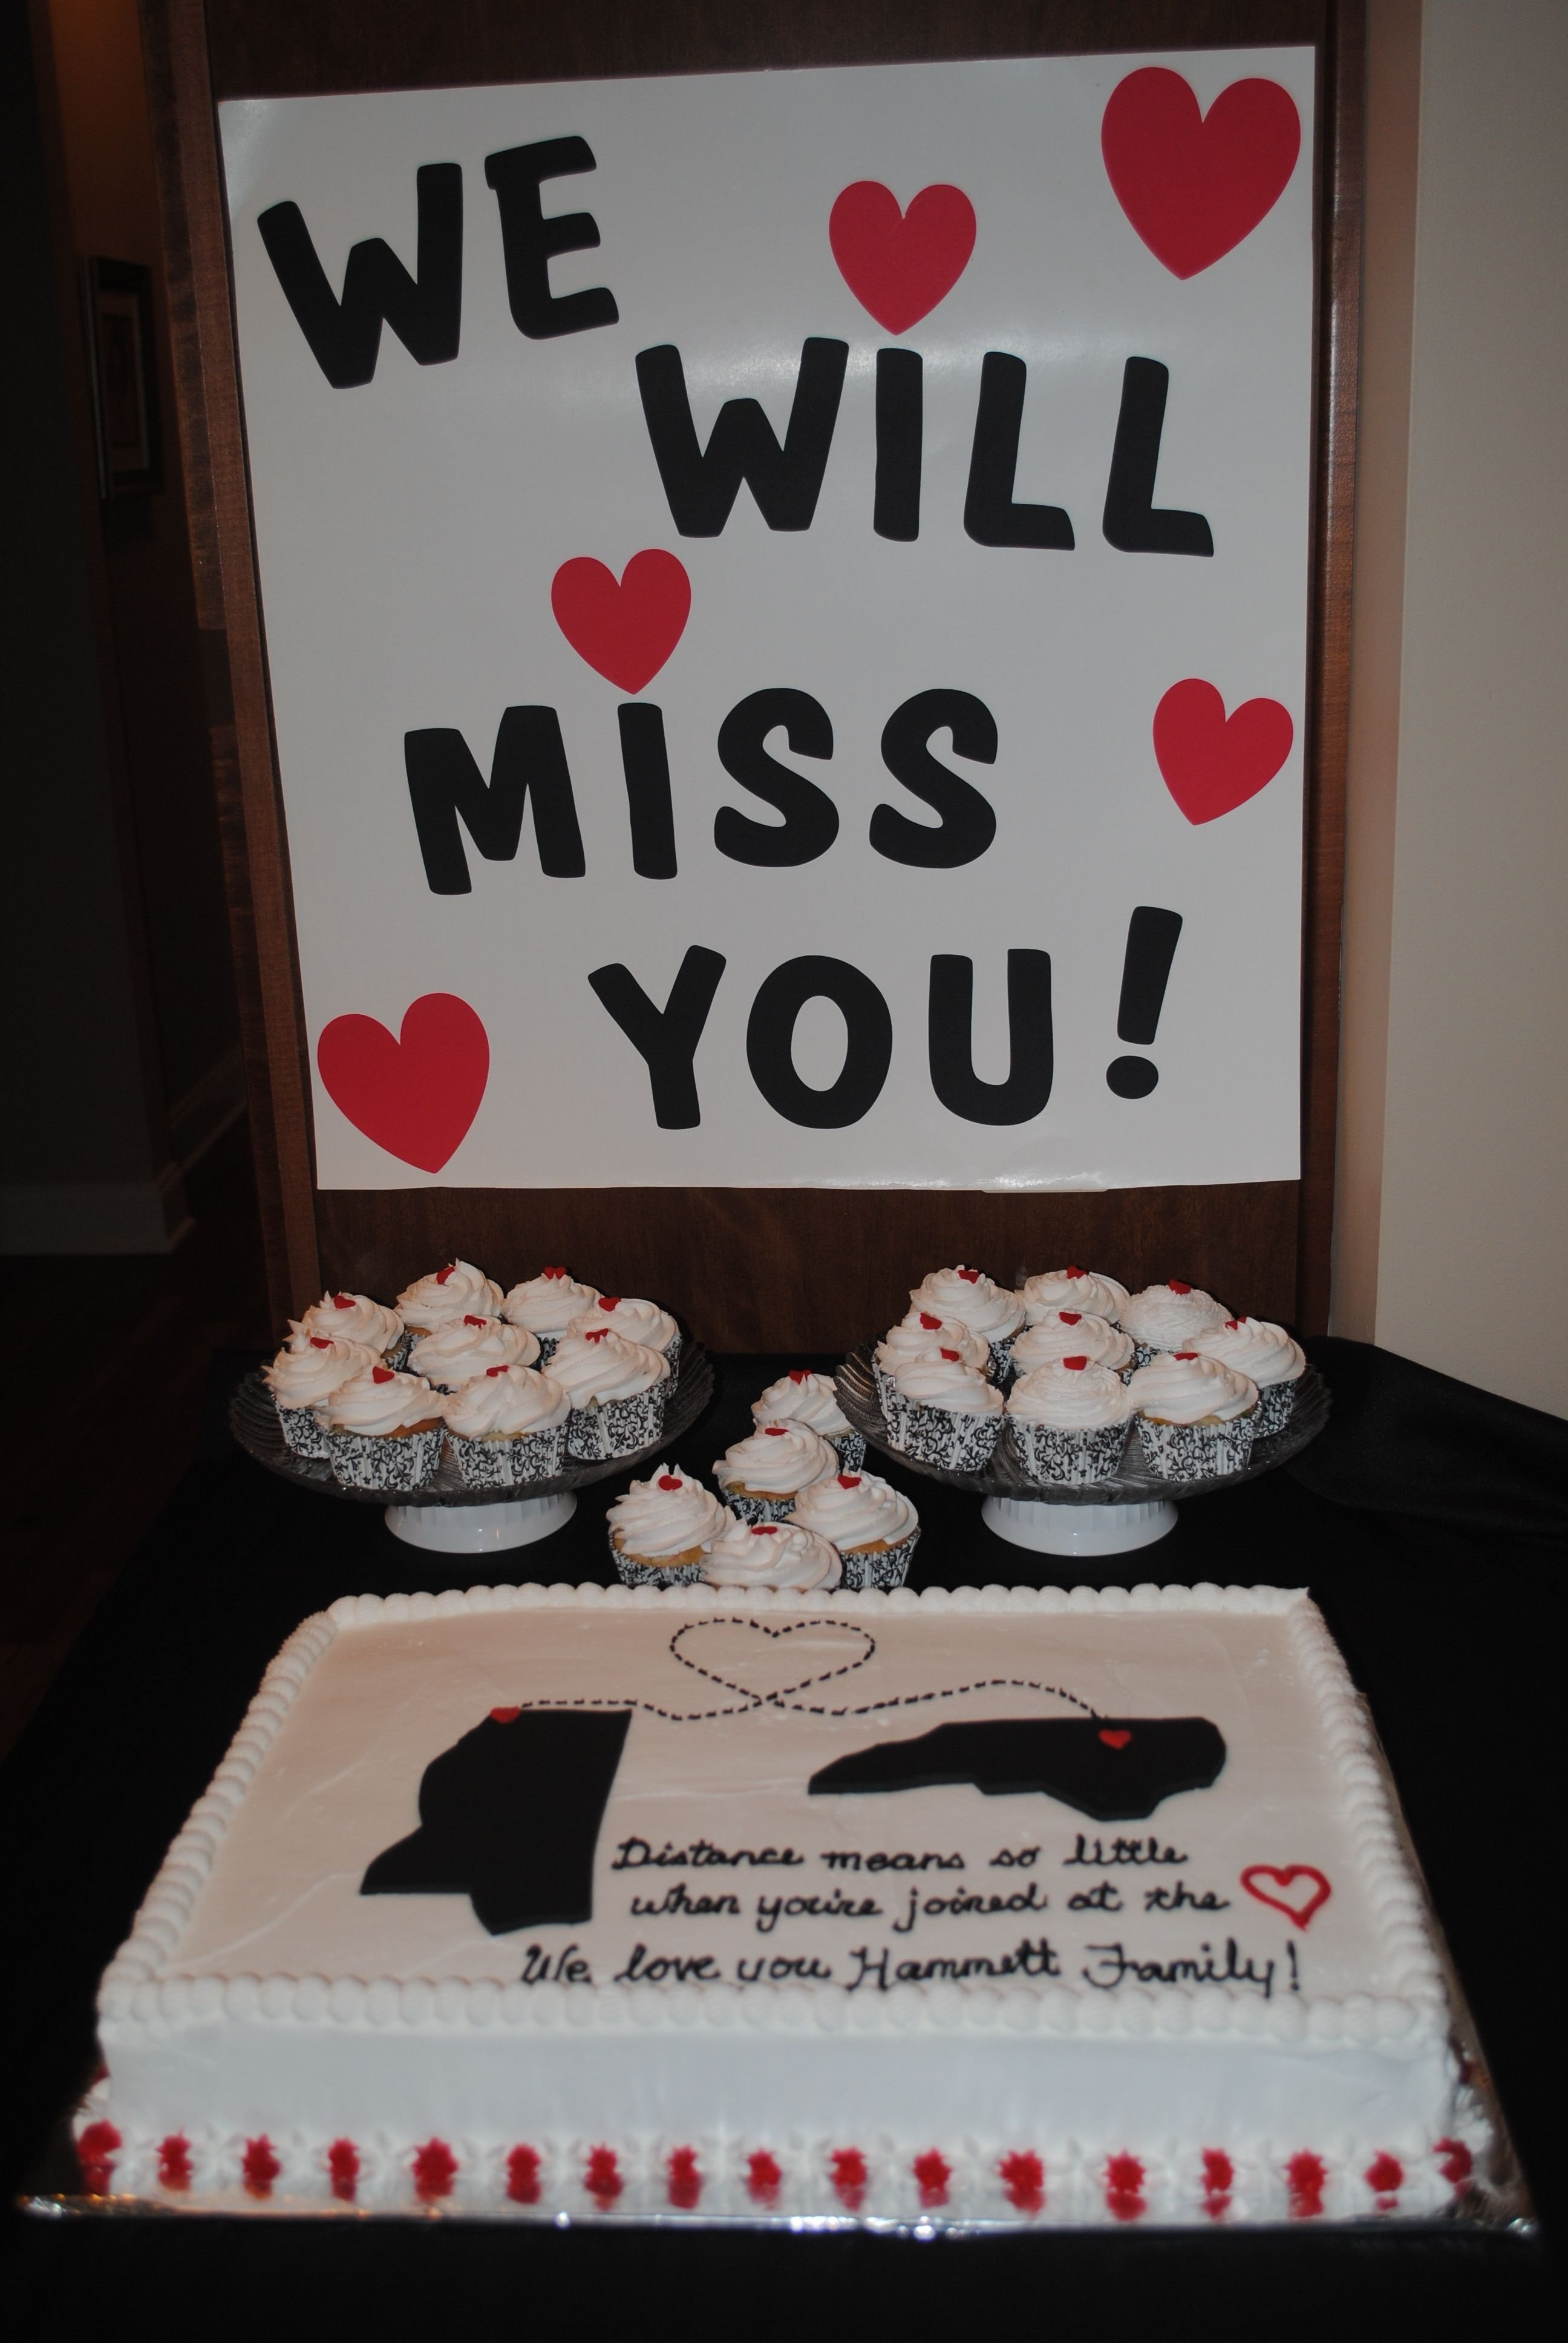 10 Awesome Ideas For A Going Away Party moving away to another state with cake sign and cupcakes distance 2020